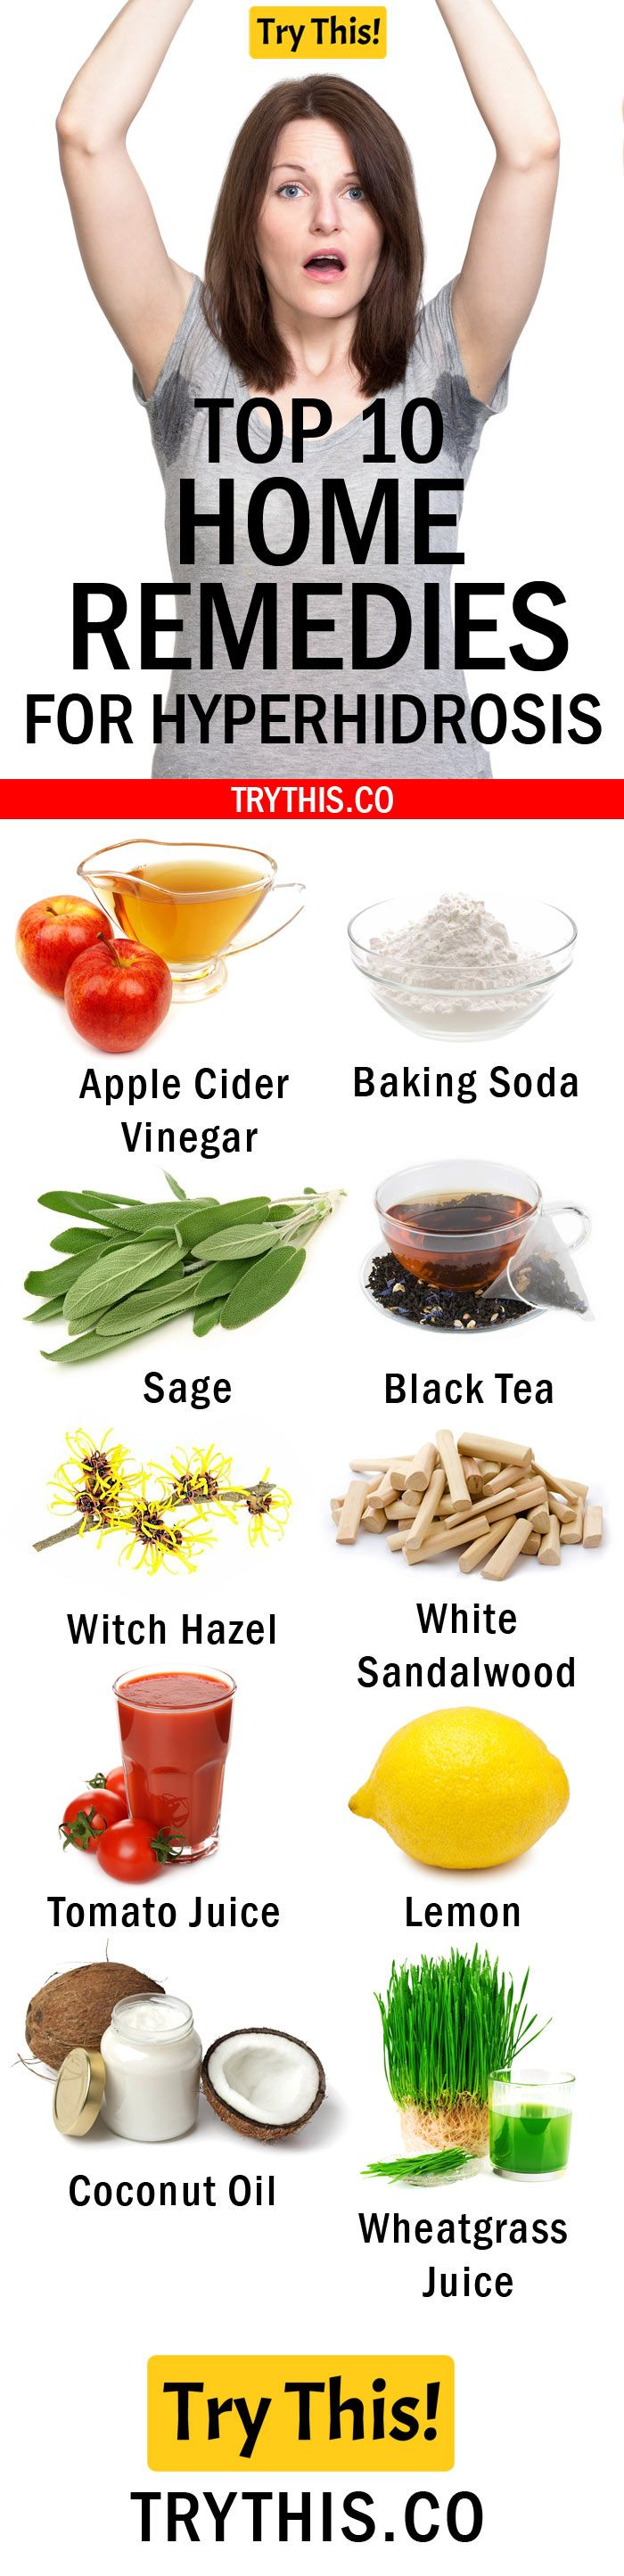 top 10 home remedies for hyperhidrosis top creative \u0026 cool ideastop 10 home remedies for hyperhidrosis top 10 home remedies, tops, health, beauty